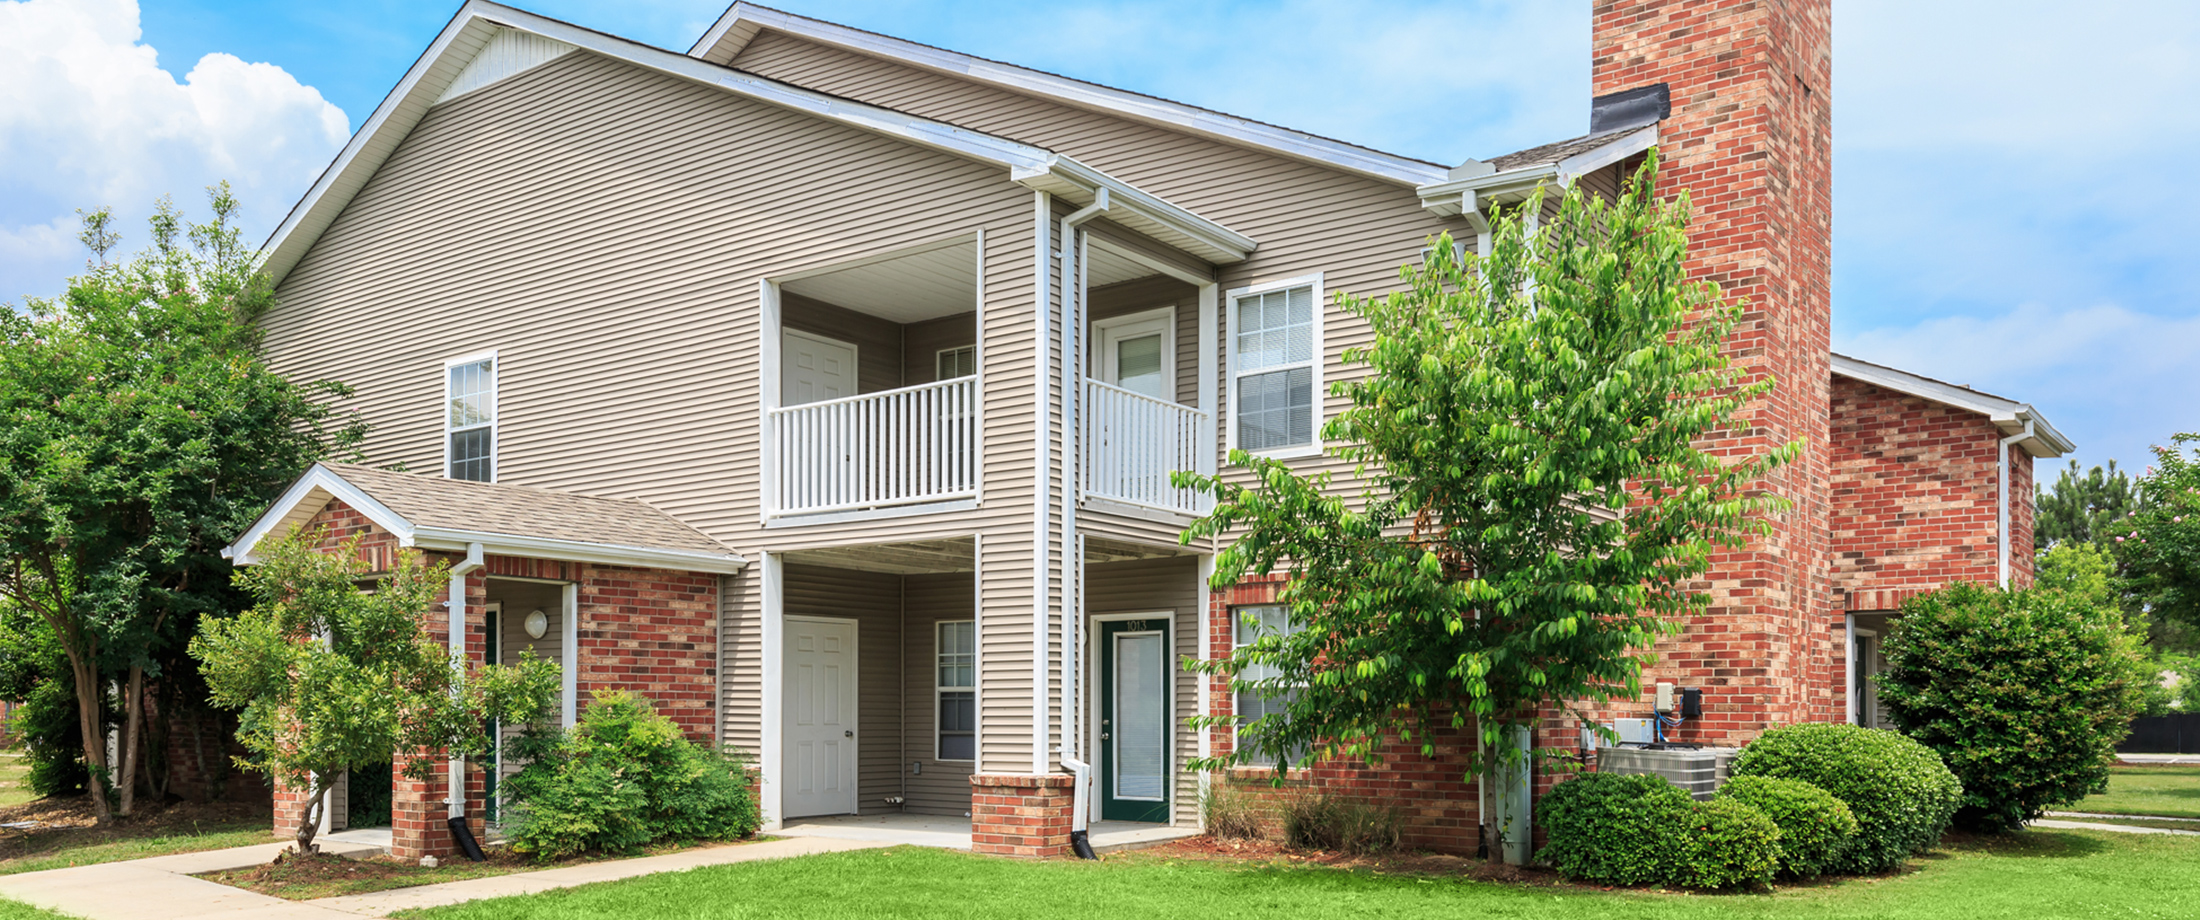 Brookstone park apartments in gulfport ms for Home builders in gulfport ms